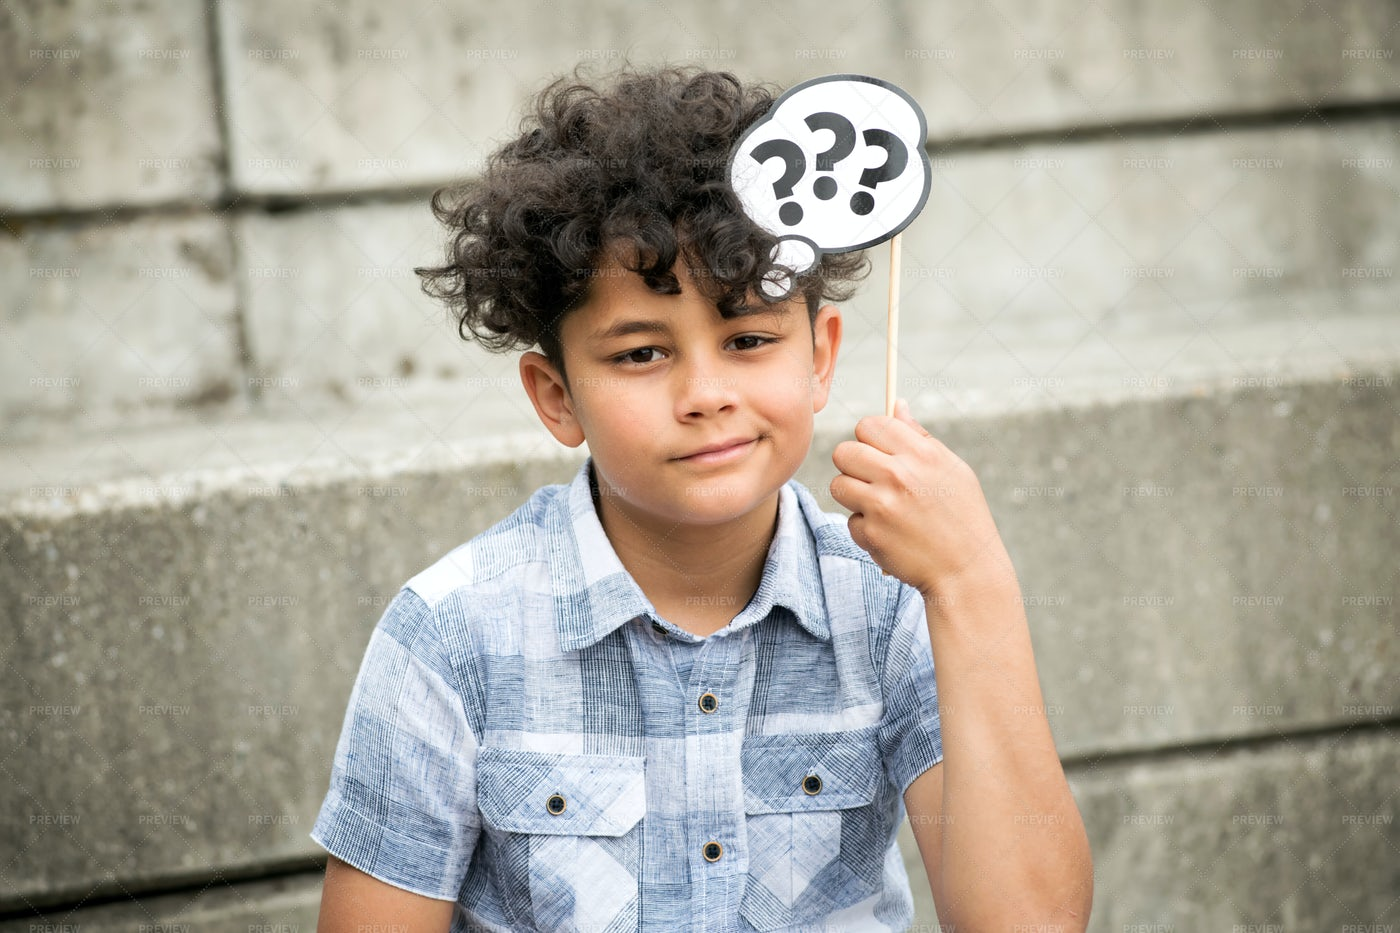 Holding Question Mark Sign: Stock Photos